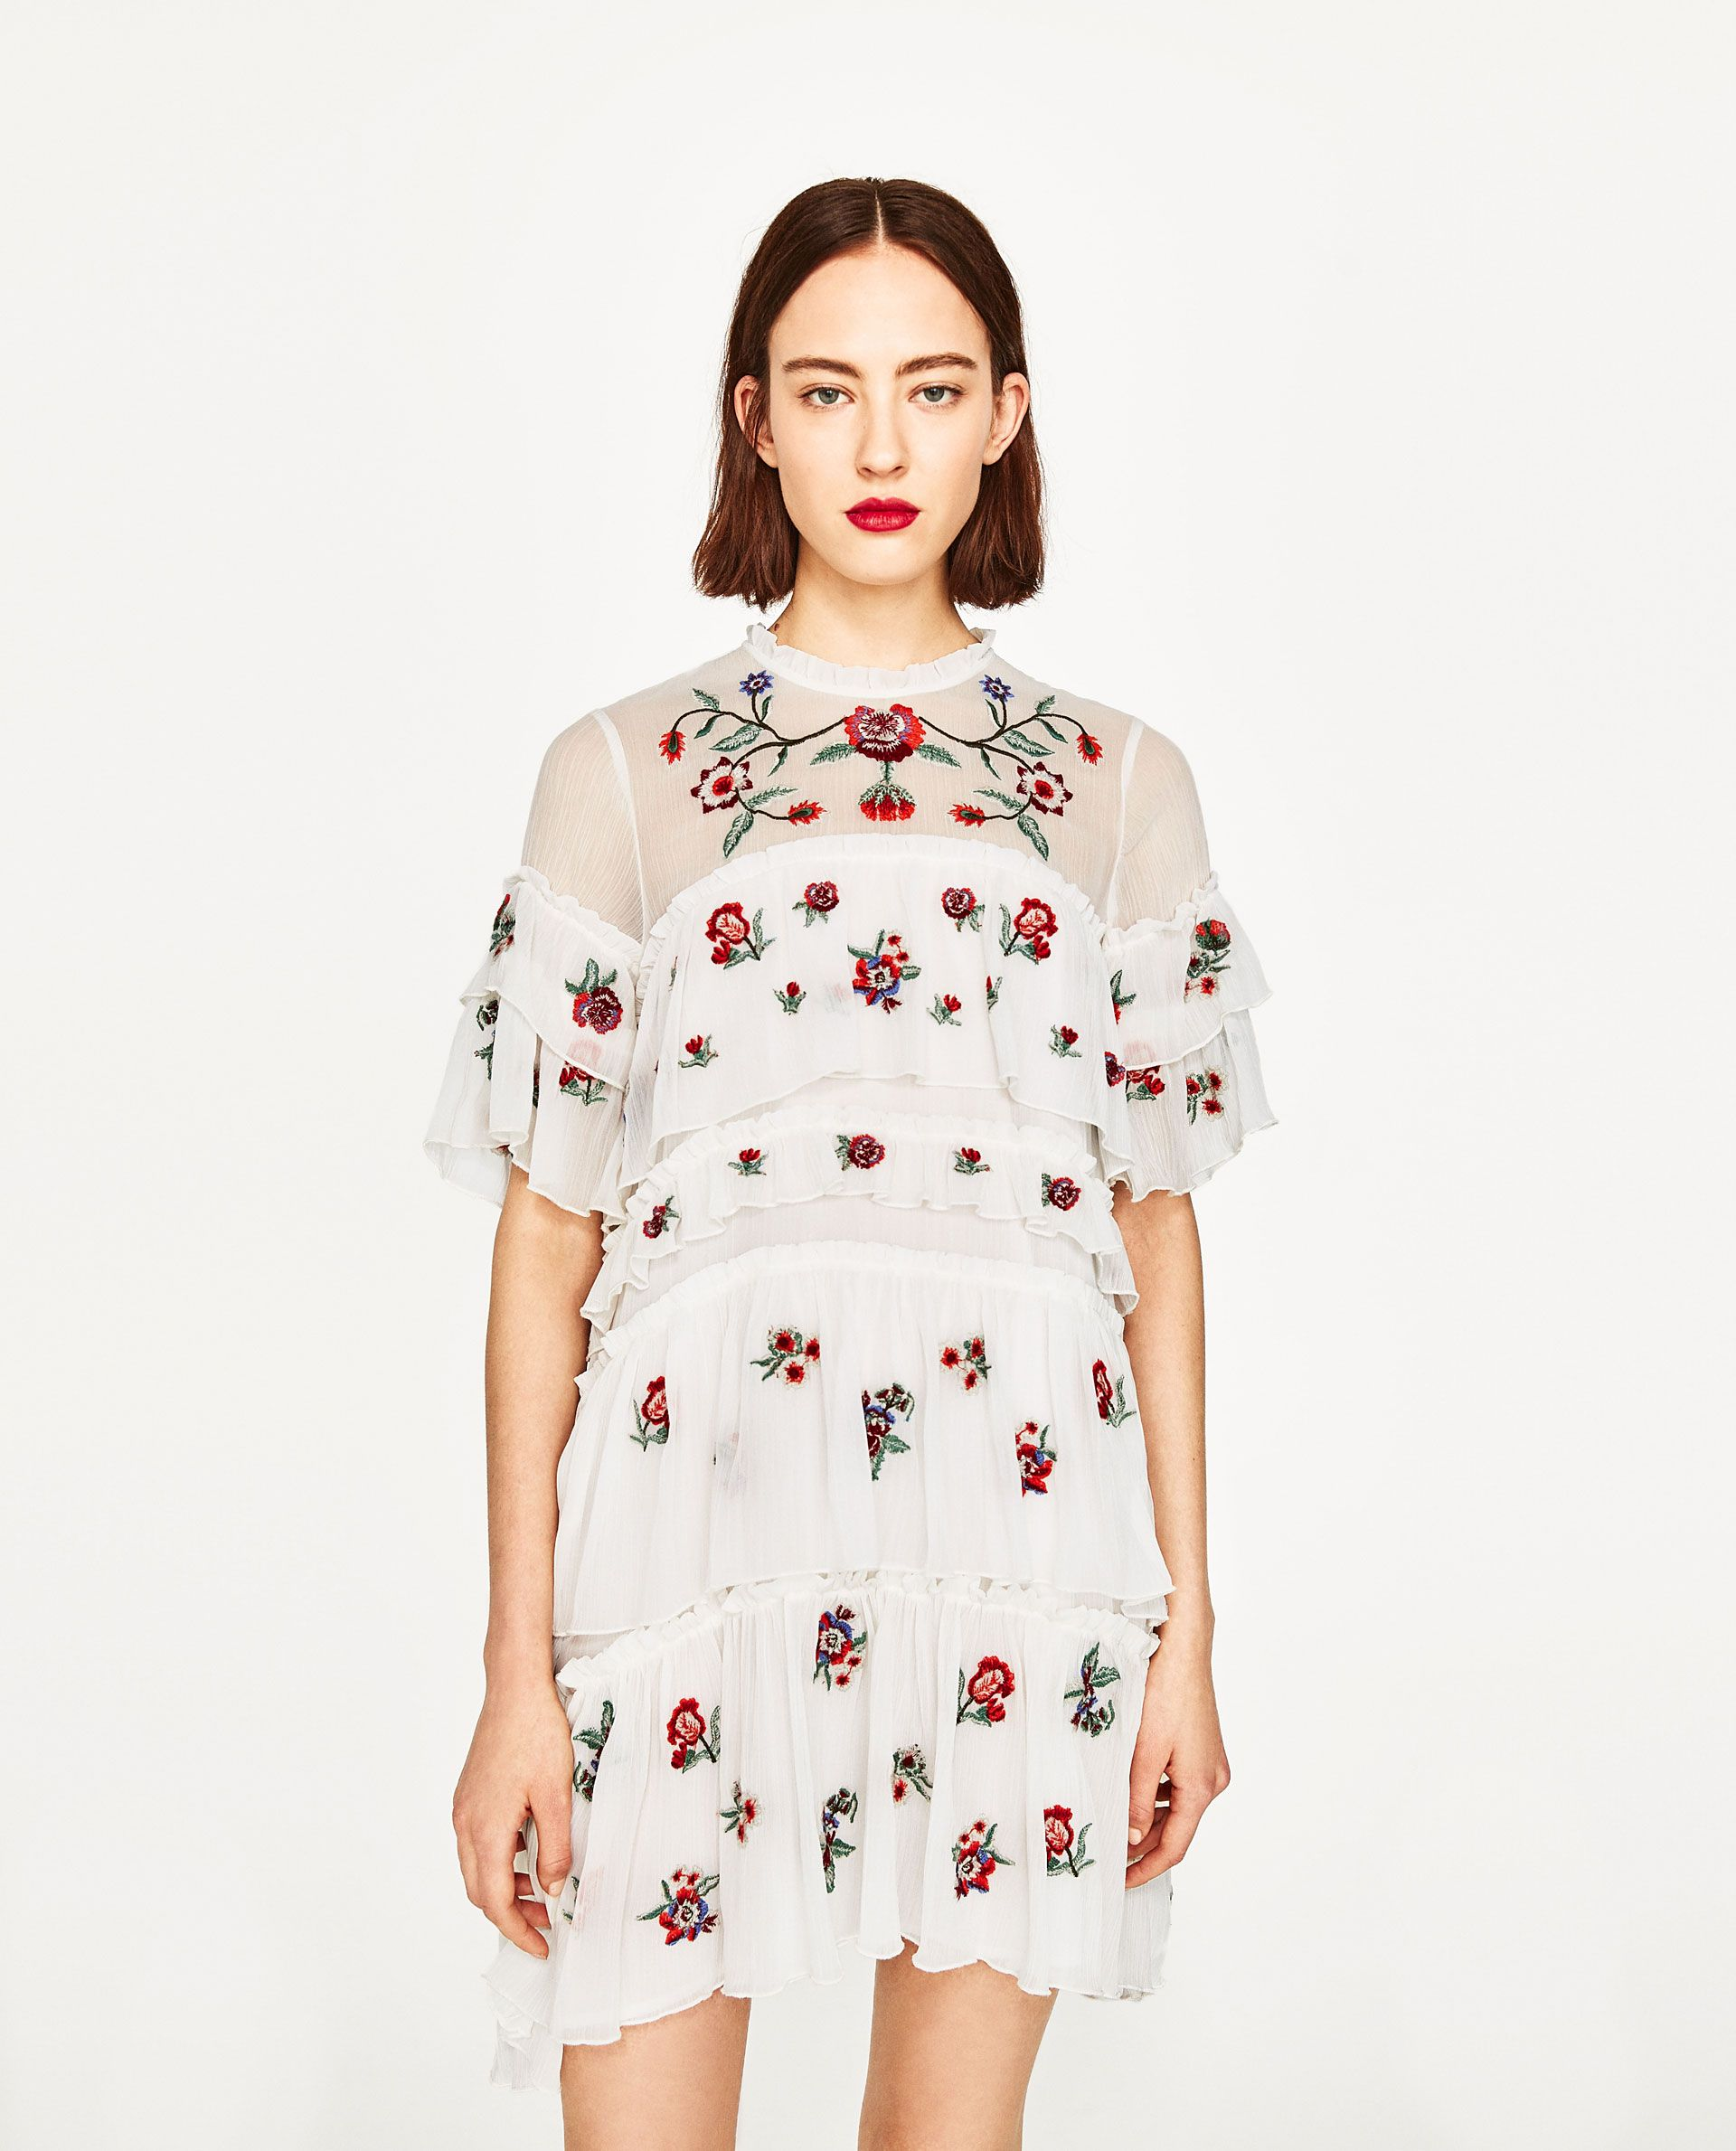 Image 2 of embroidered mini dress from zara dresses pinterest weve rounded up perfect wedding guest dresses that are chic and affordable this creme zara embroidered ruffle dress ombrellifo Choice Image